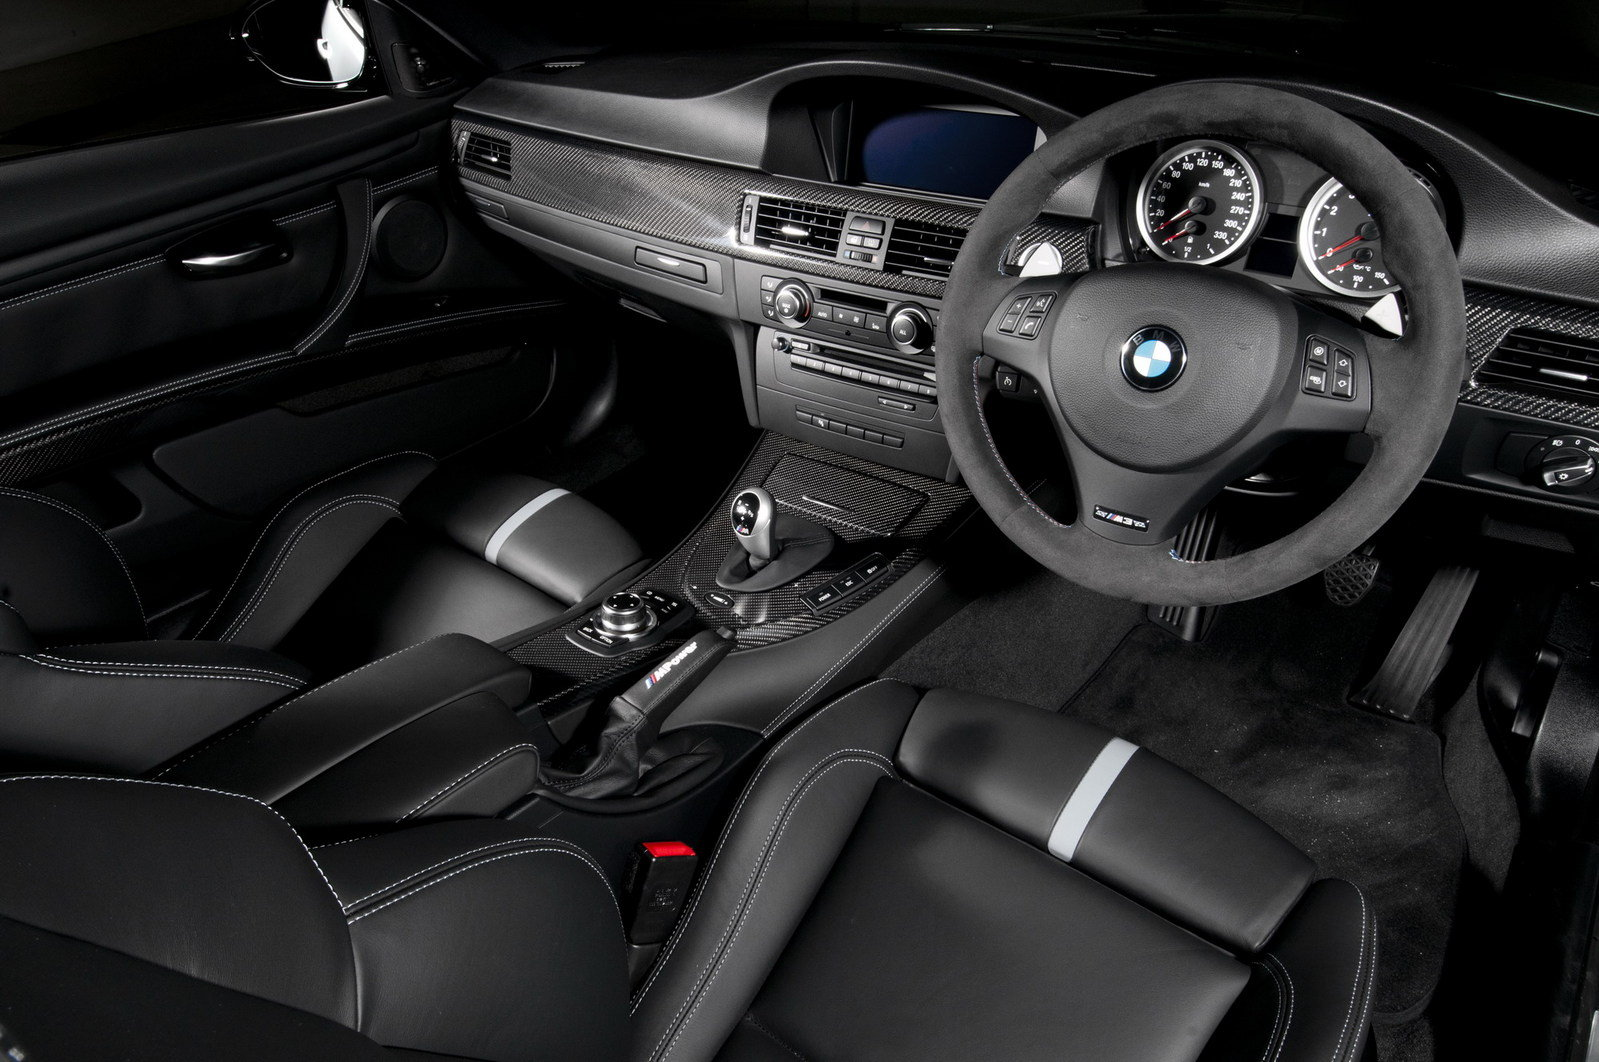 http://pictures.topspeed.com/IMG/crop/201202/bmw-m3-coupe-competi-8_1600x0w.jpg